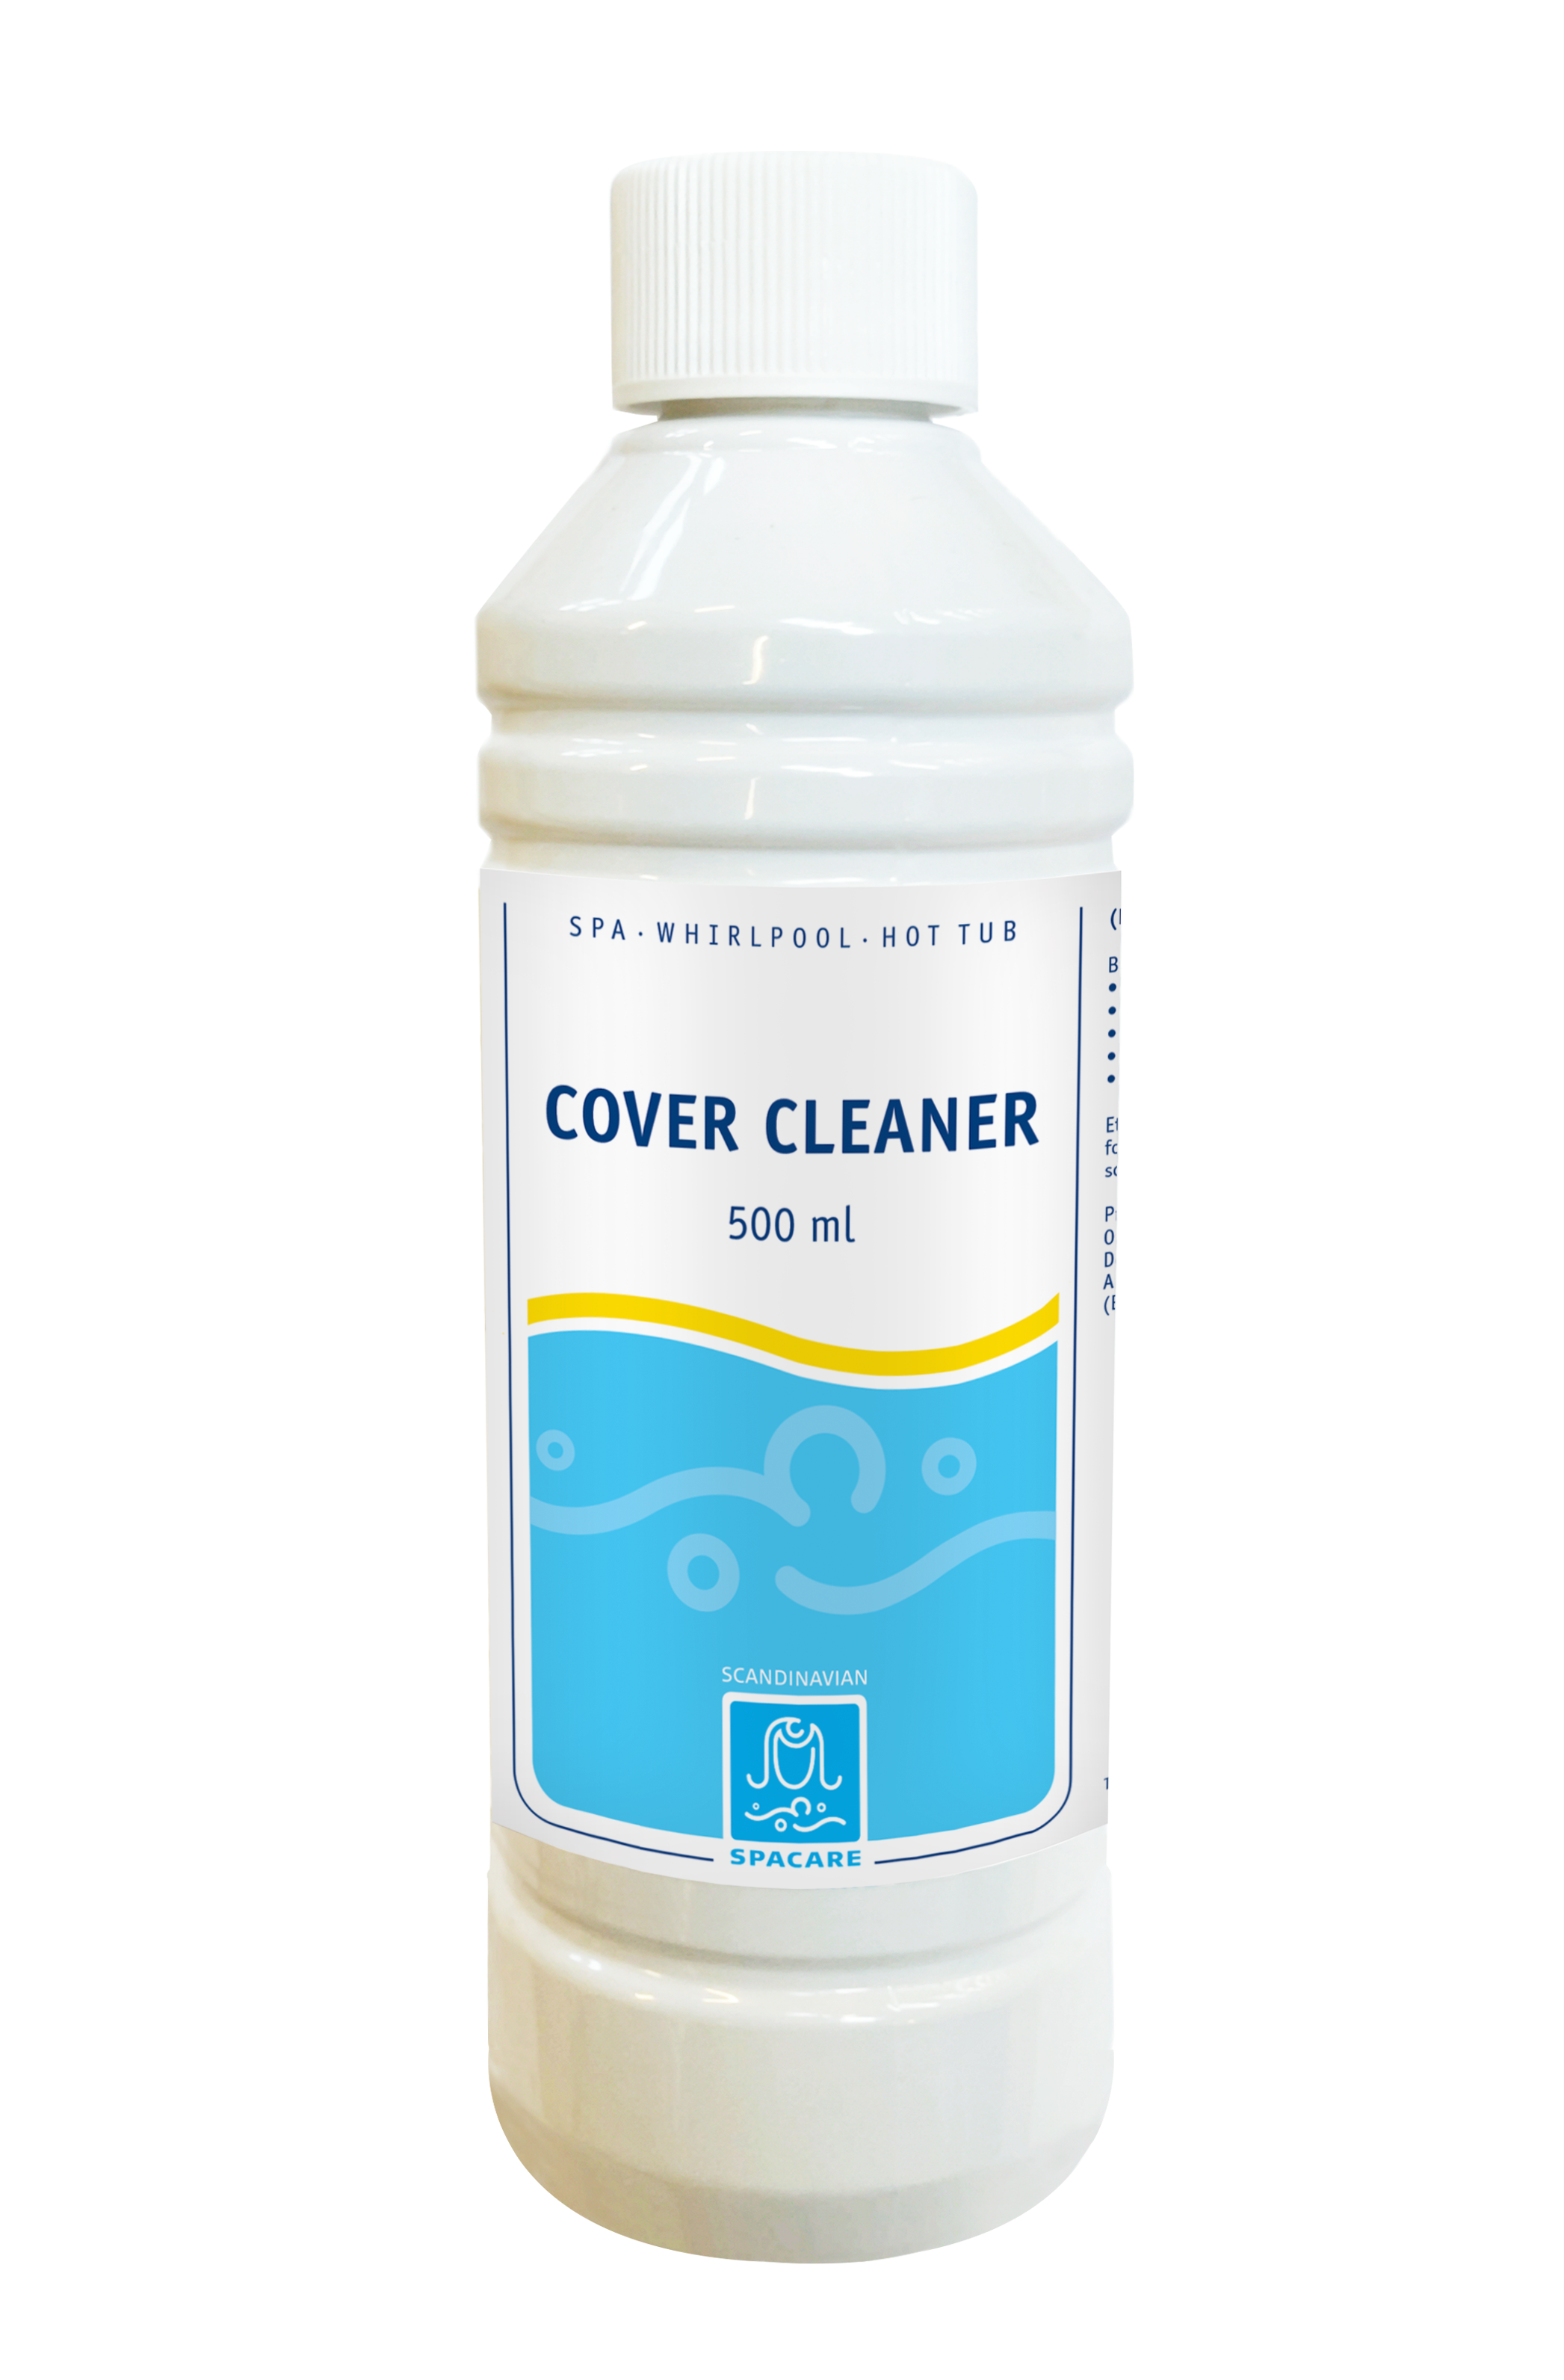 SpaCare Cover Cleaner